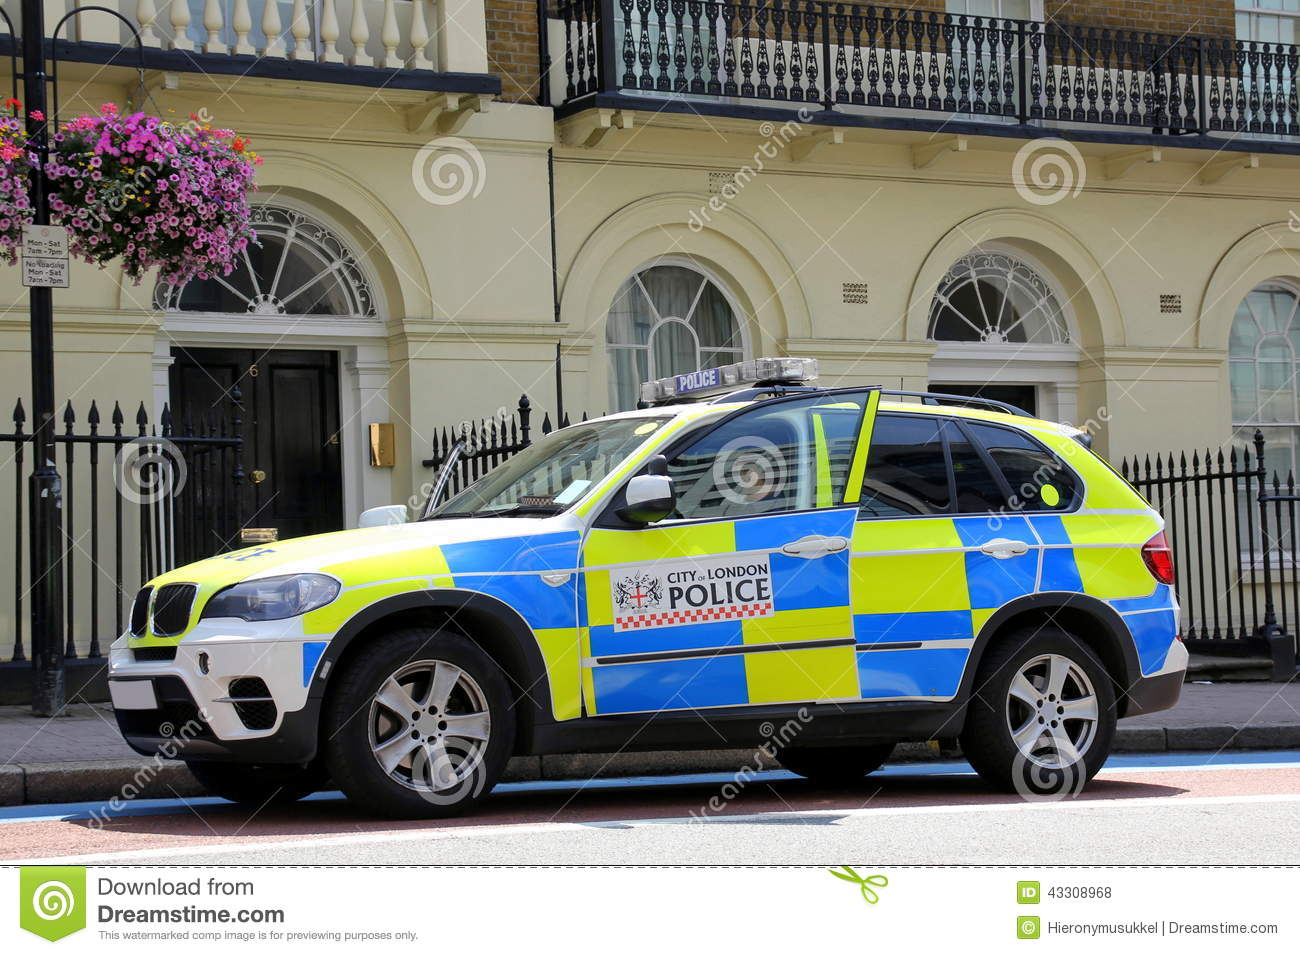 voiture de police de londres photo stock image du bleu patrouille 43308968. Black Bedroom Furniture Sets. Home Design Ideas